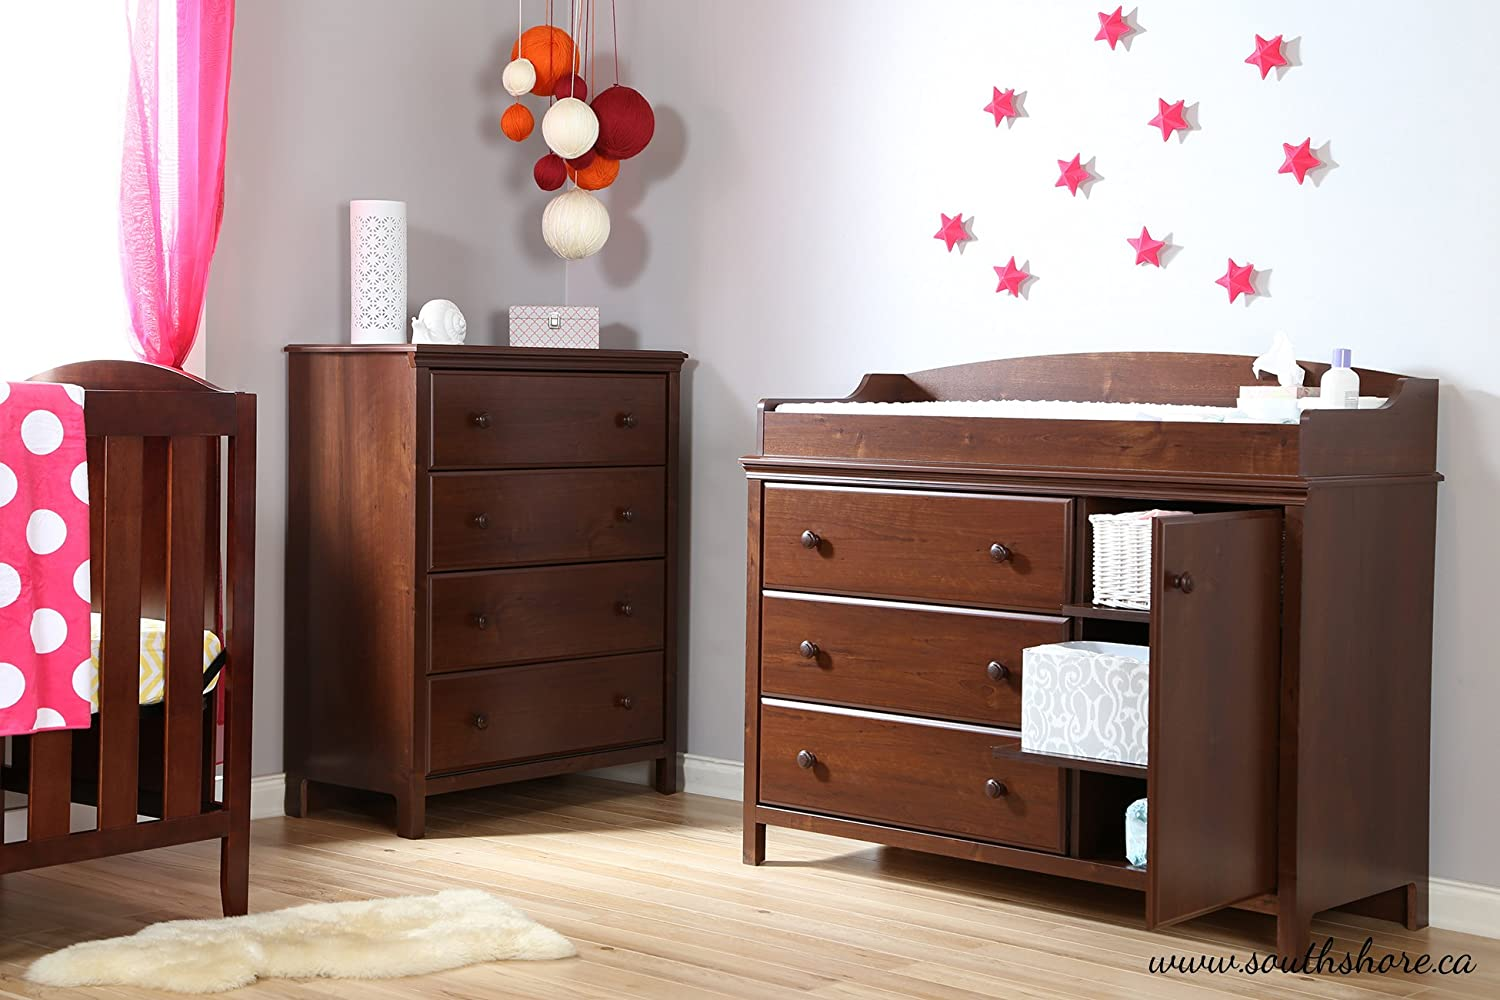 Amazon.com : South Shore Cotton Candy Changing Table With Removable Changing  Station, Sumptuous Cherry : Kitchen U0026 Dining